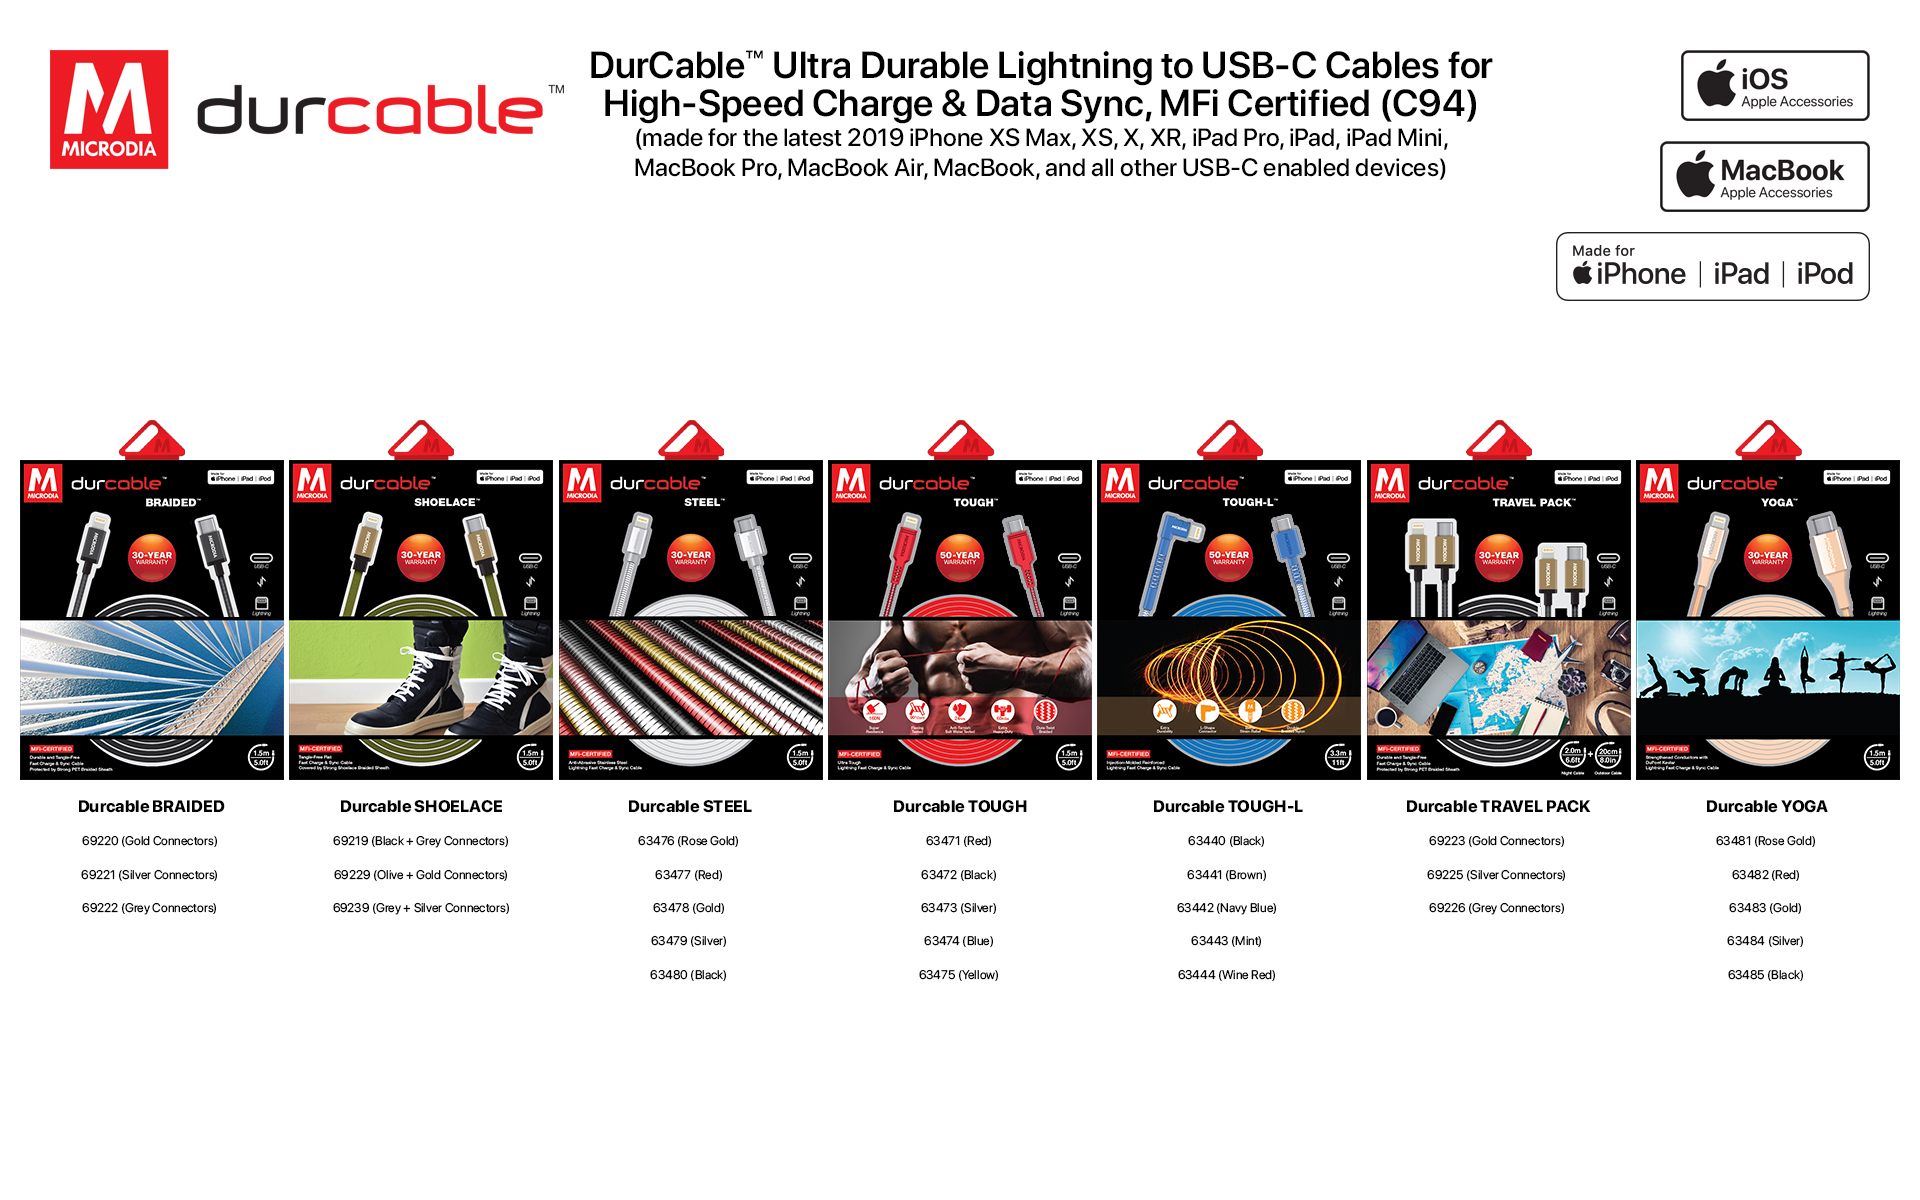 21.1 Durcable USB-C to Lightning Cable